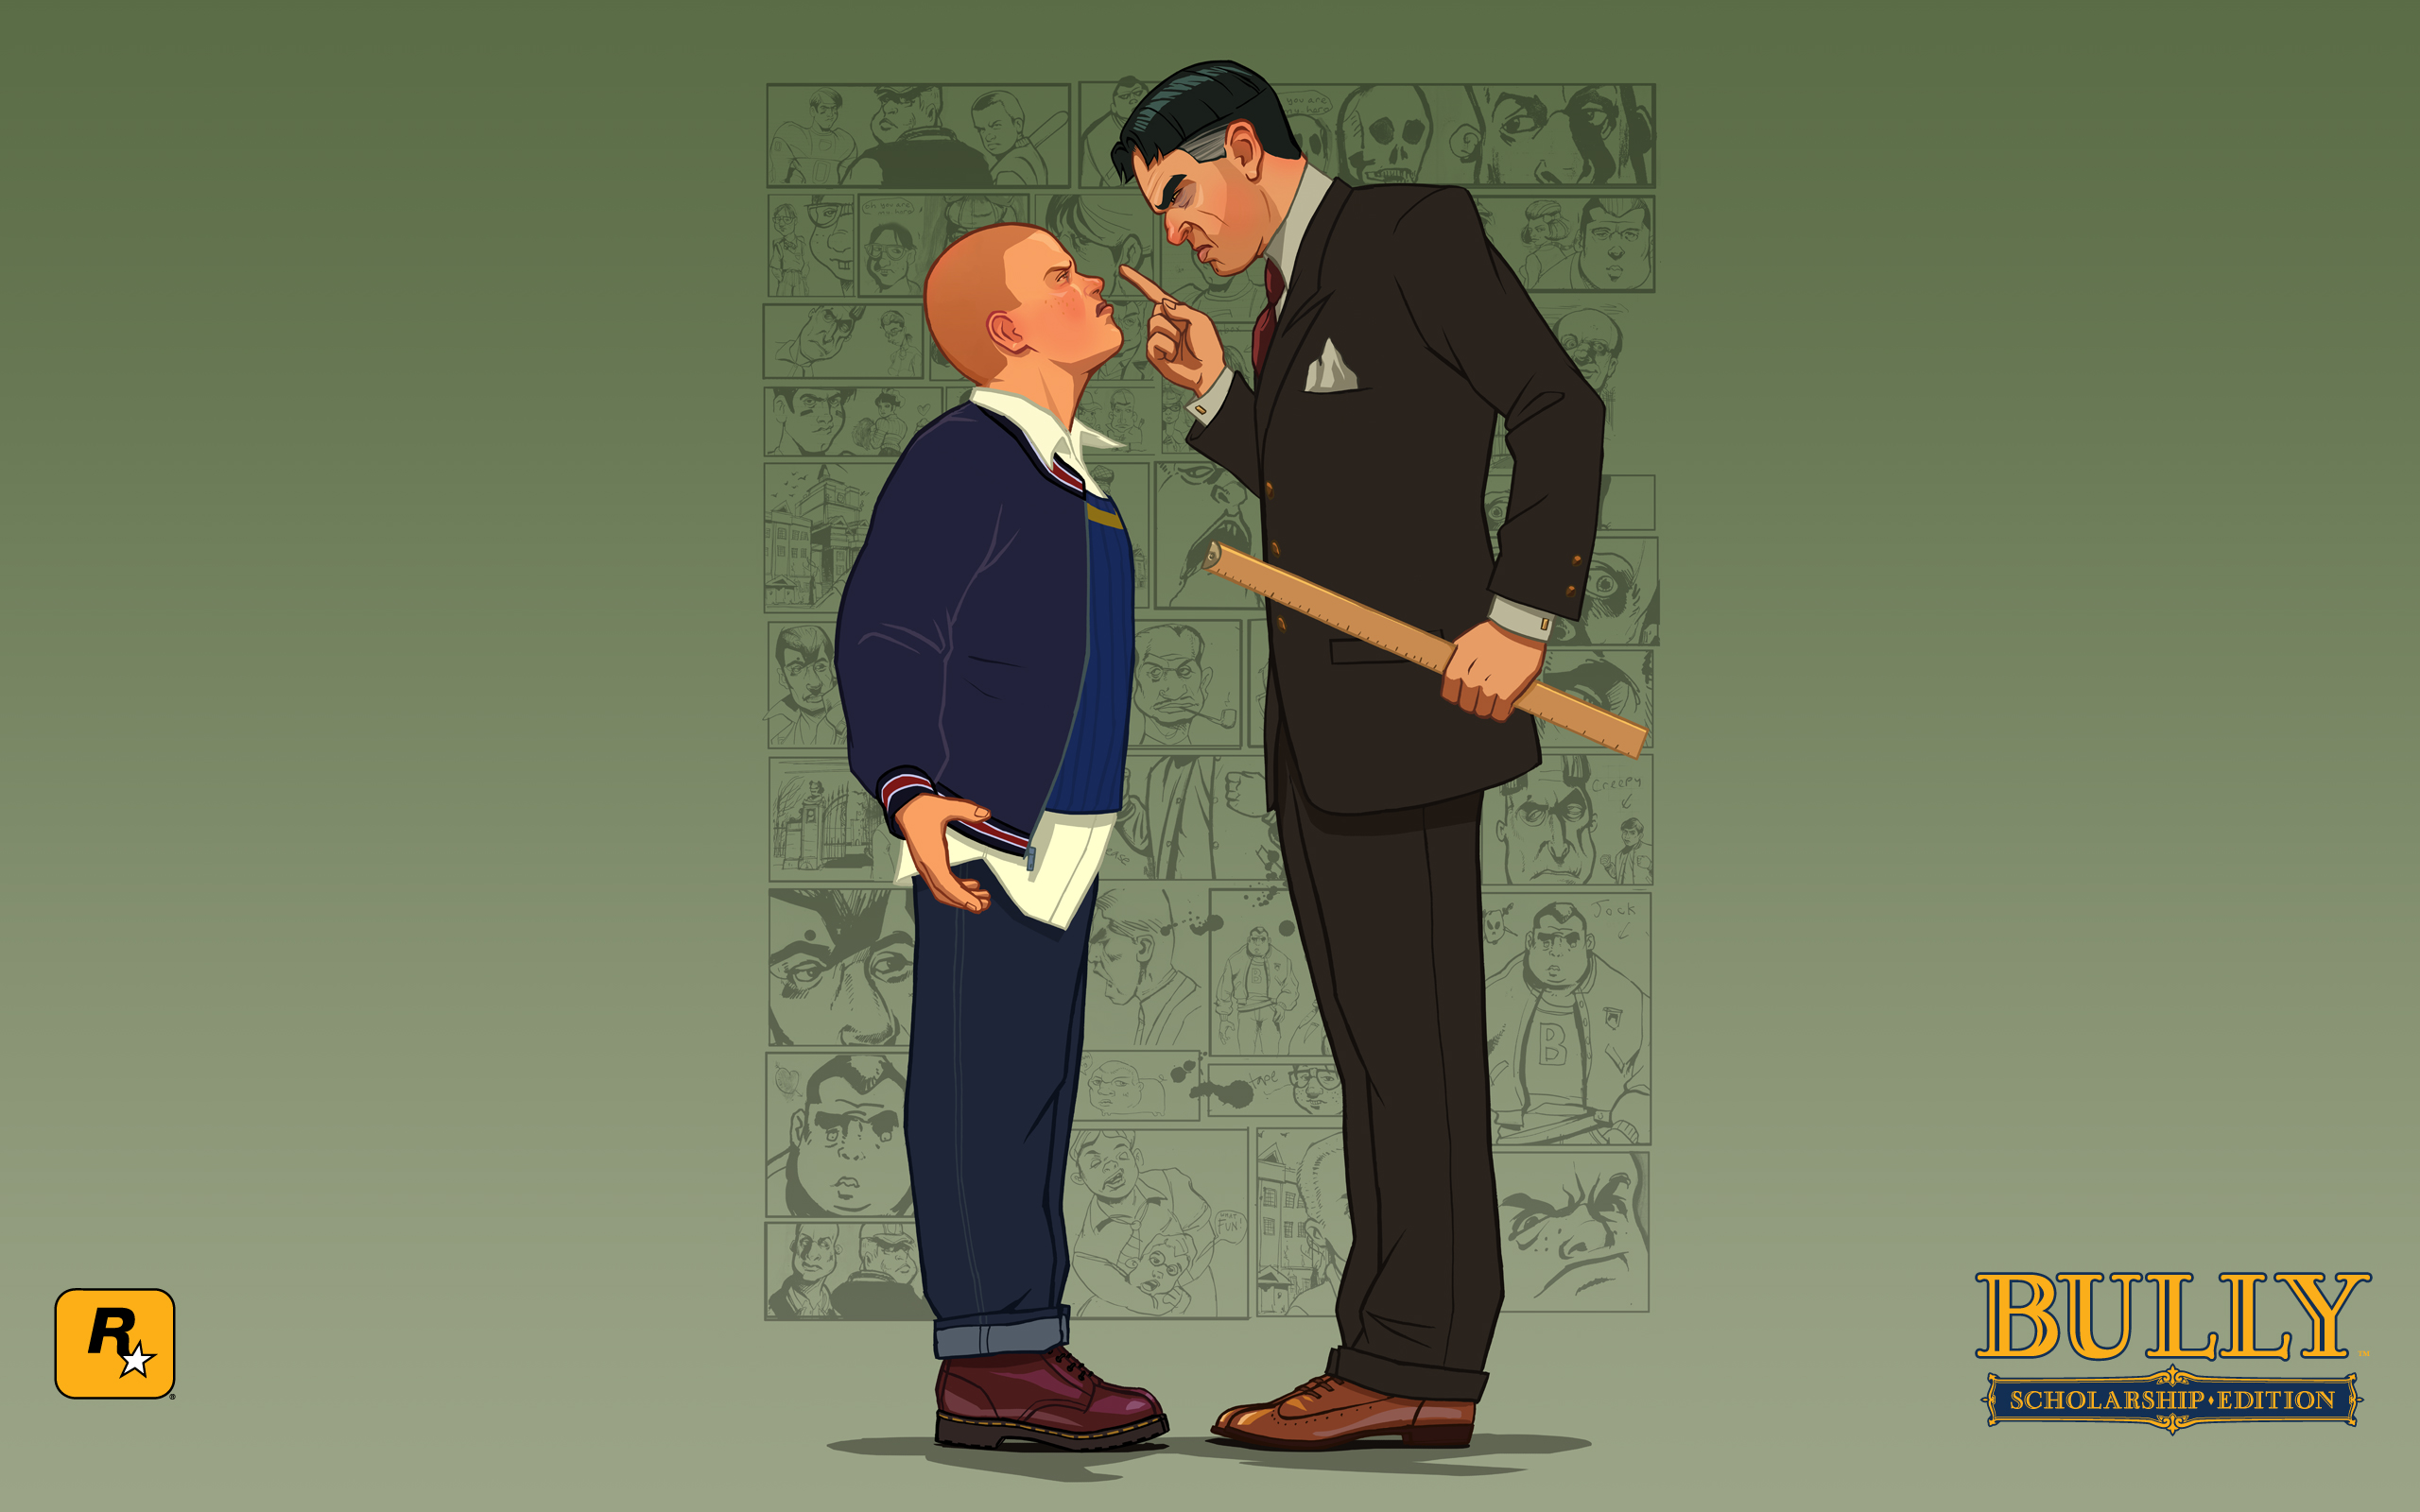 Bully Scholarship Edition 2016 promotional art   MobyGames 2560x1600